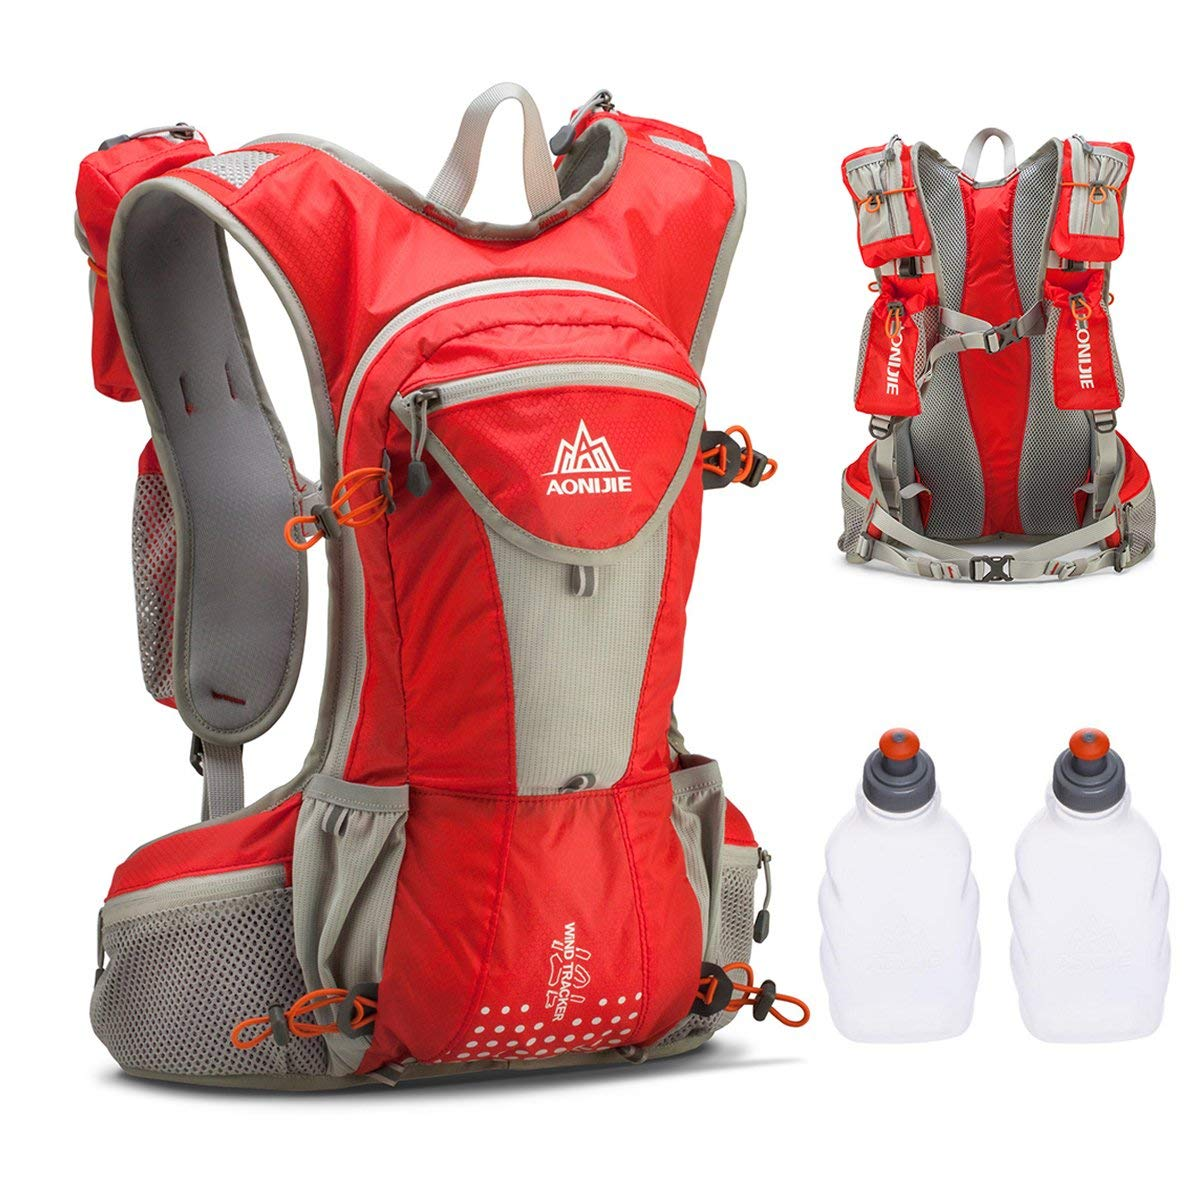 edf2864701 Get Quotations · JEELAD 12L Running Vest Hydration Pack Backpack Waterproof Hydration  Vest for Skiing Marathon Running Race Hiking